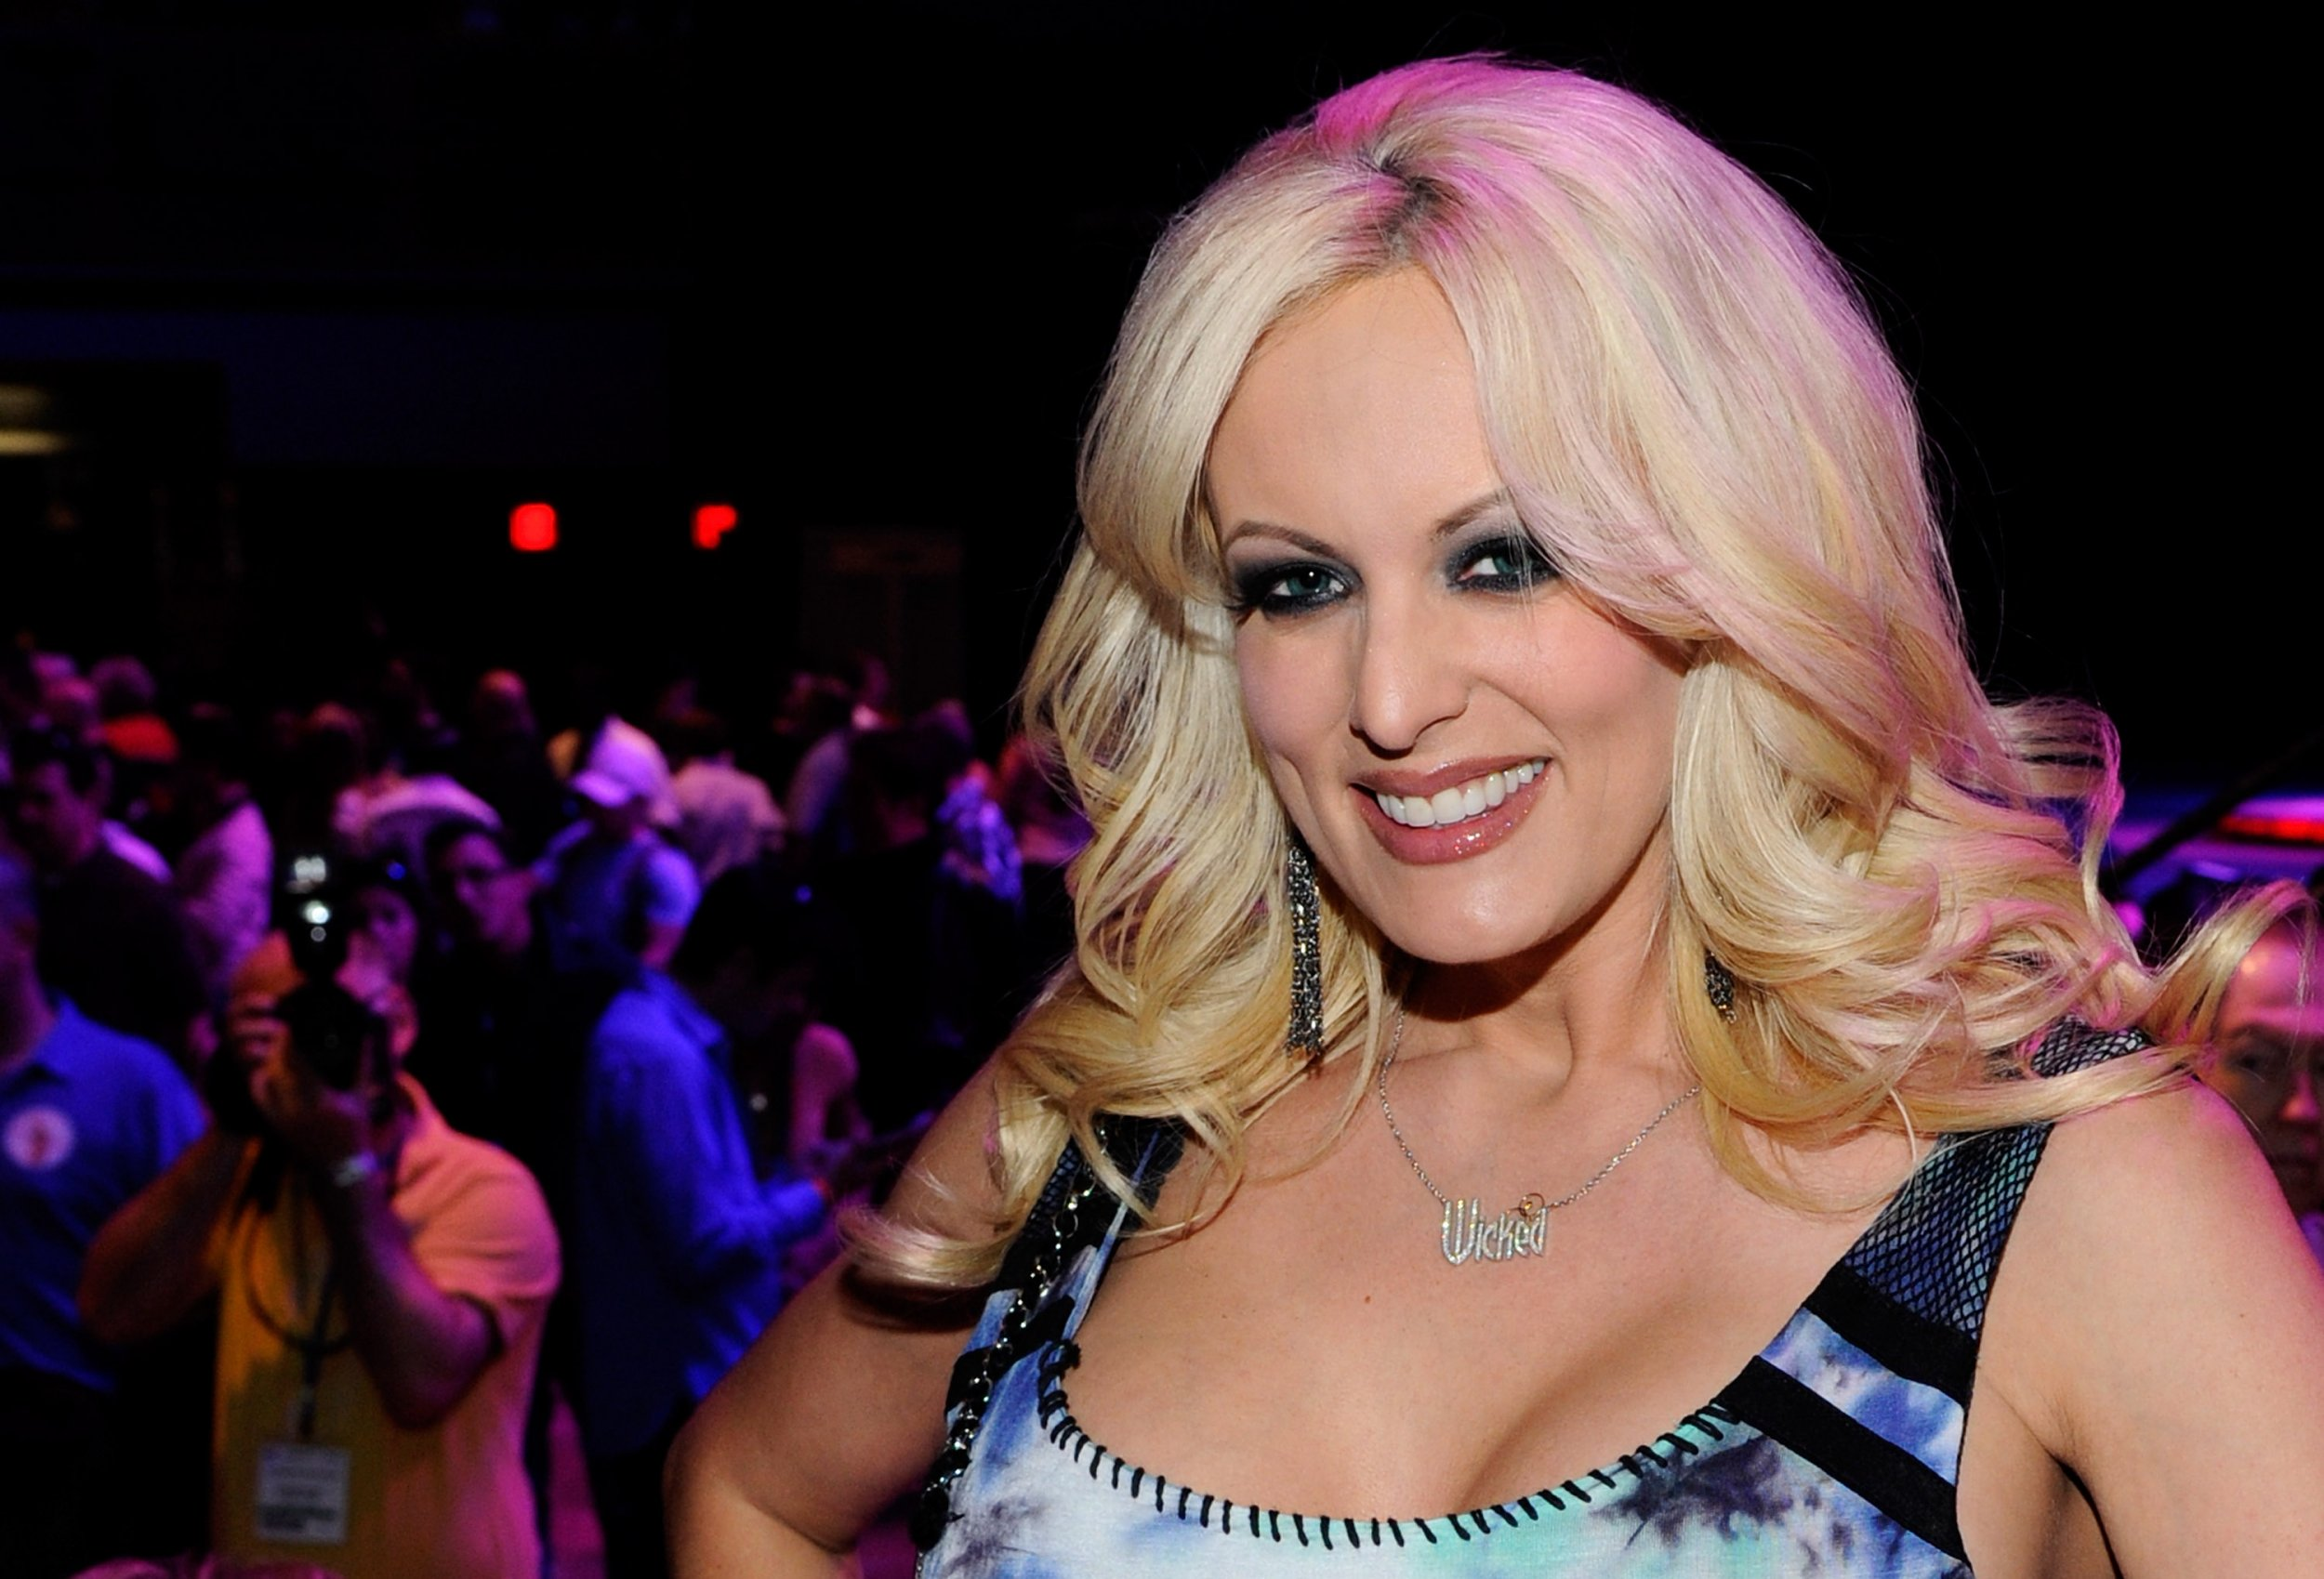 Trump lawyer arranged $130000 payment for porn star's silence